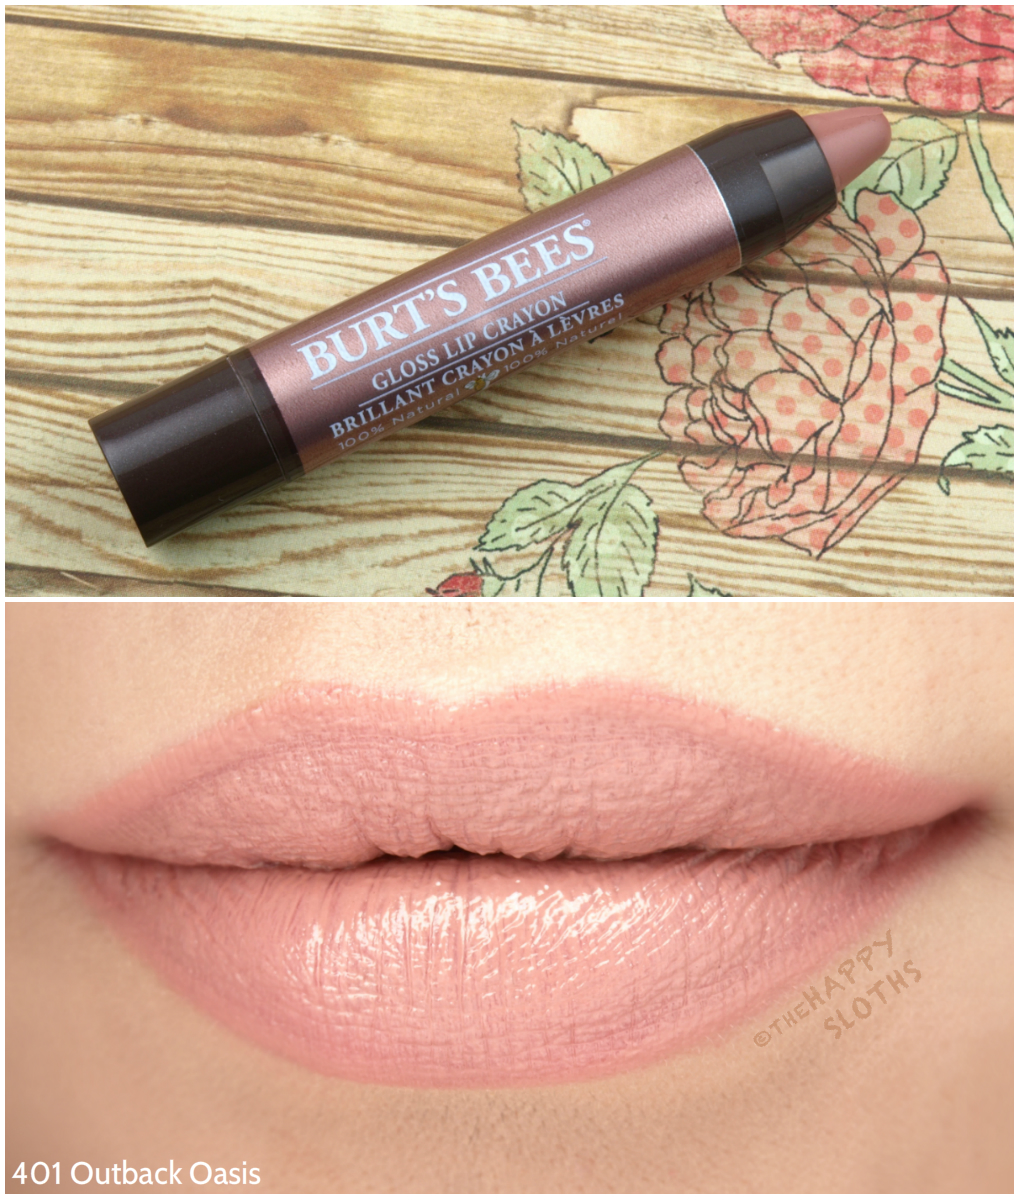 Burt's Bees Gloss Lip Crayon in 401 Outback Oasis: Review and Swatches